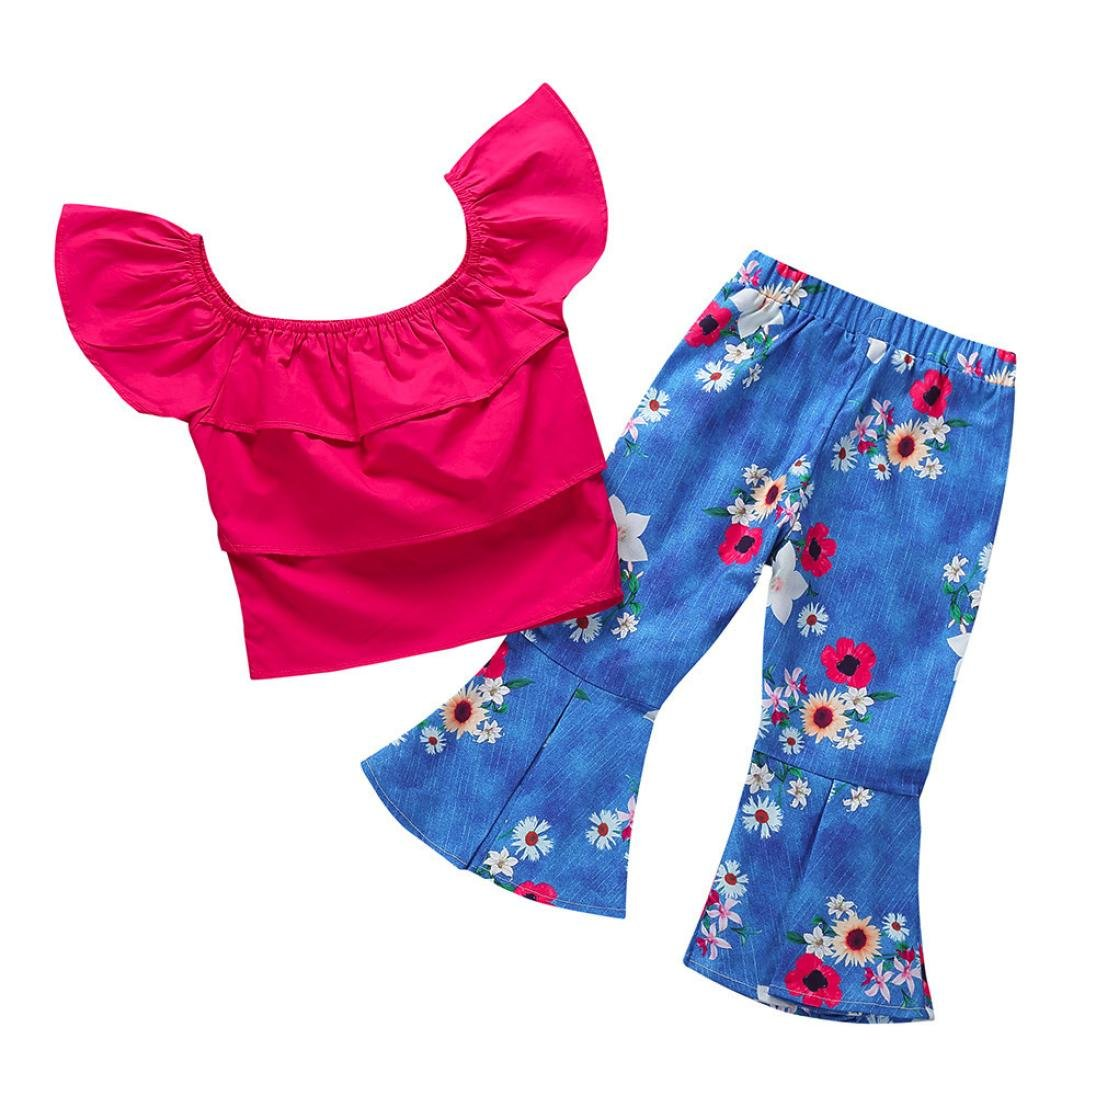 Toddler Baby Girls Kids Summer Clothes Outfits Mingfa Off Shoulder Tops+Denim Floral Flare Pants Set for 1-4 Years Old